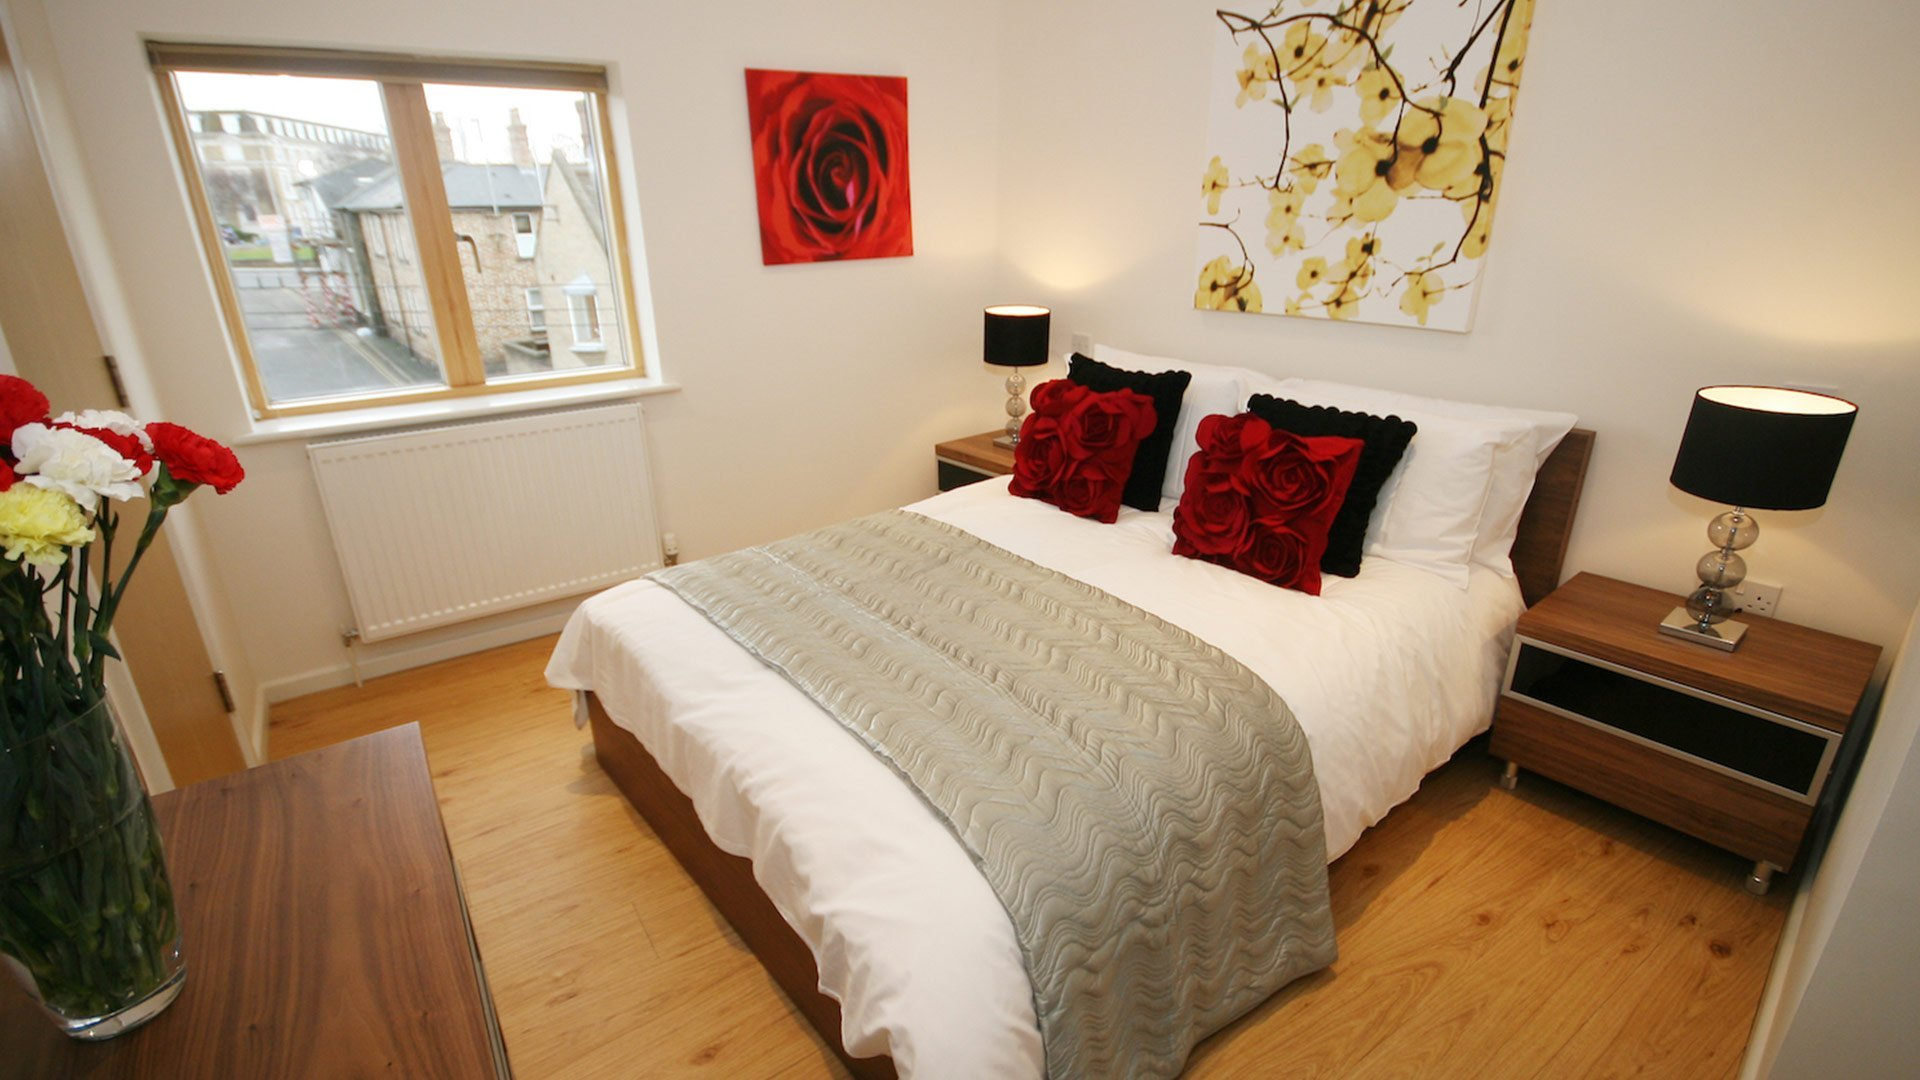 Looking-for-affordable-accommodation-in-Cambridge?-why-not-book-our-lovely-Cambridge-Serviced-Accommodation-at-St-Peters-Street.-Call-today-for-great-rates.